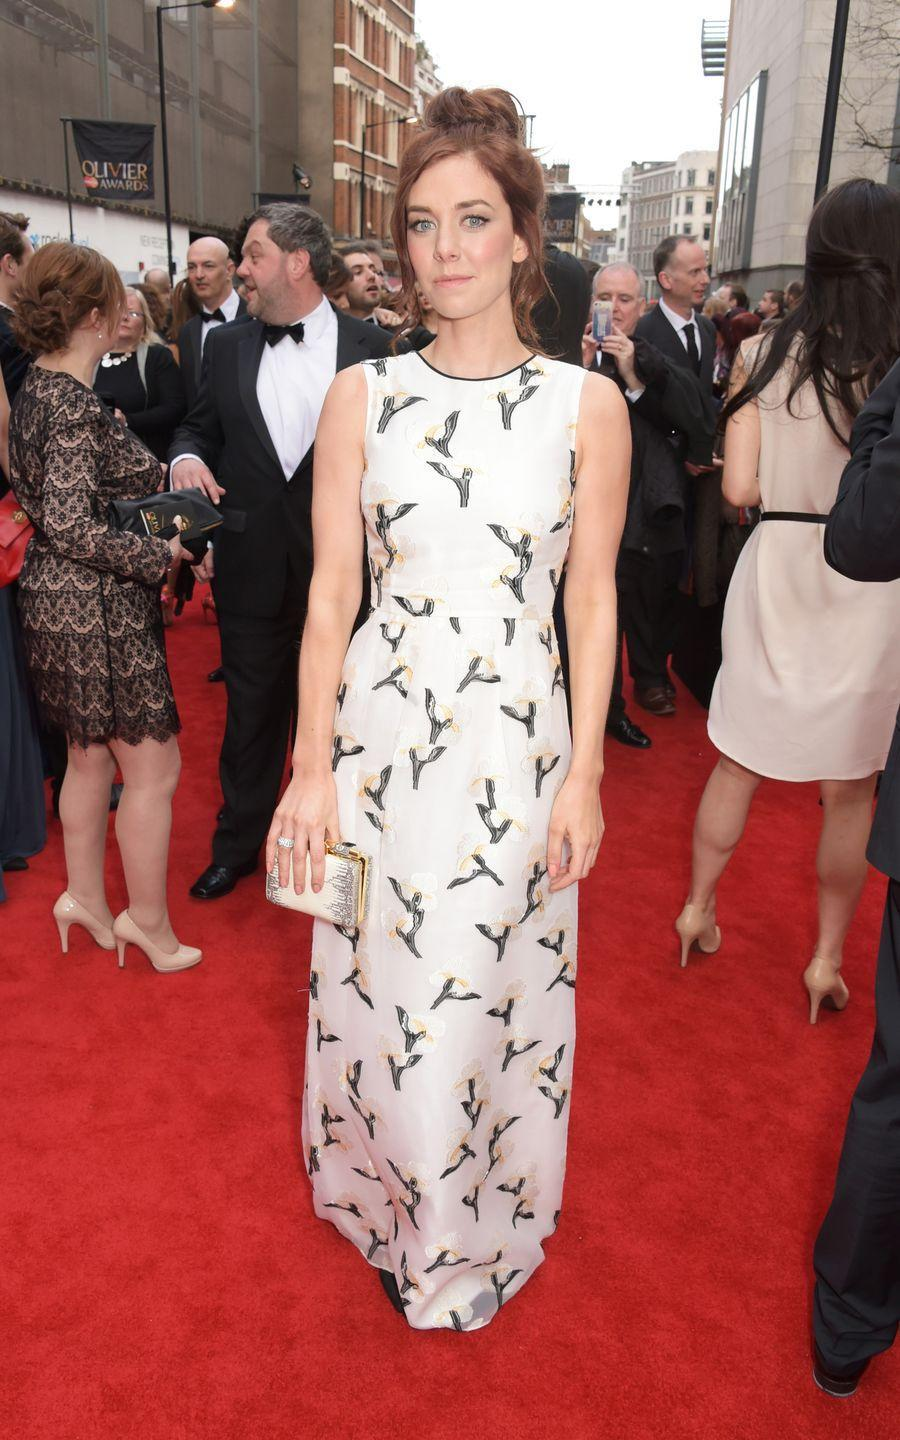 <p>Kirby wears a printed gown to the Olivier Awards in London.</p>